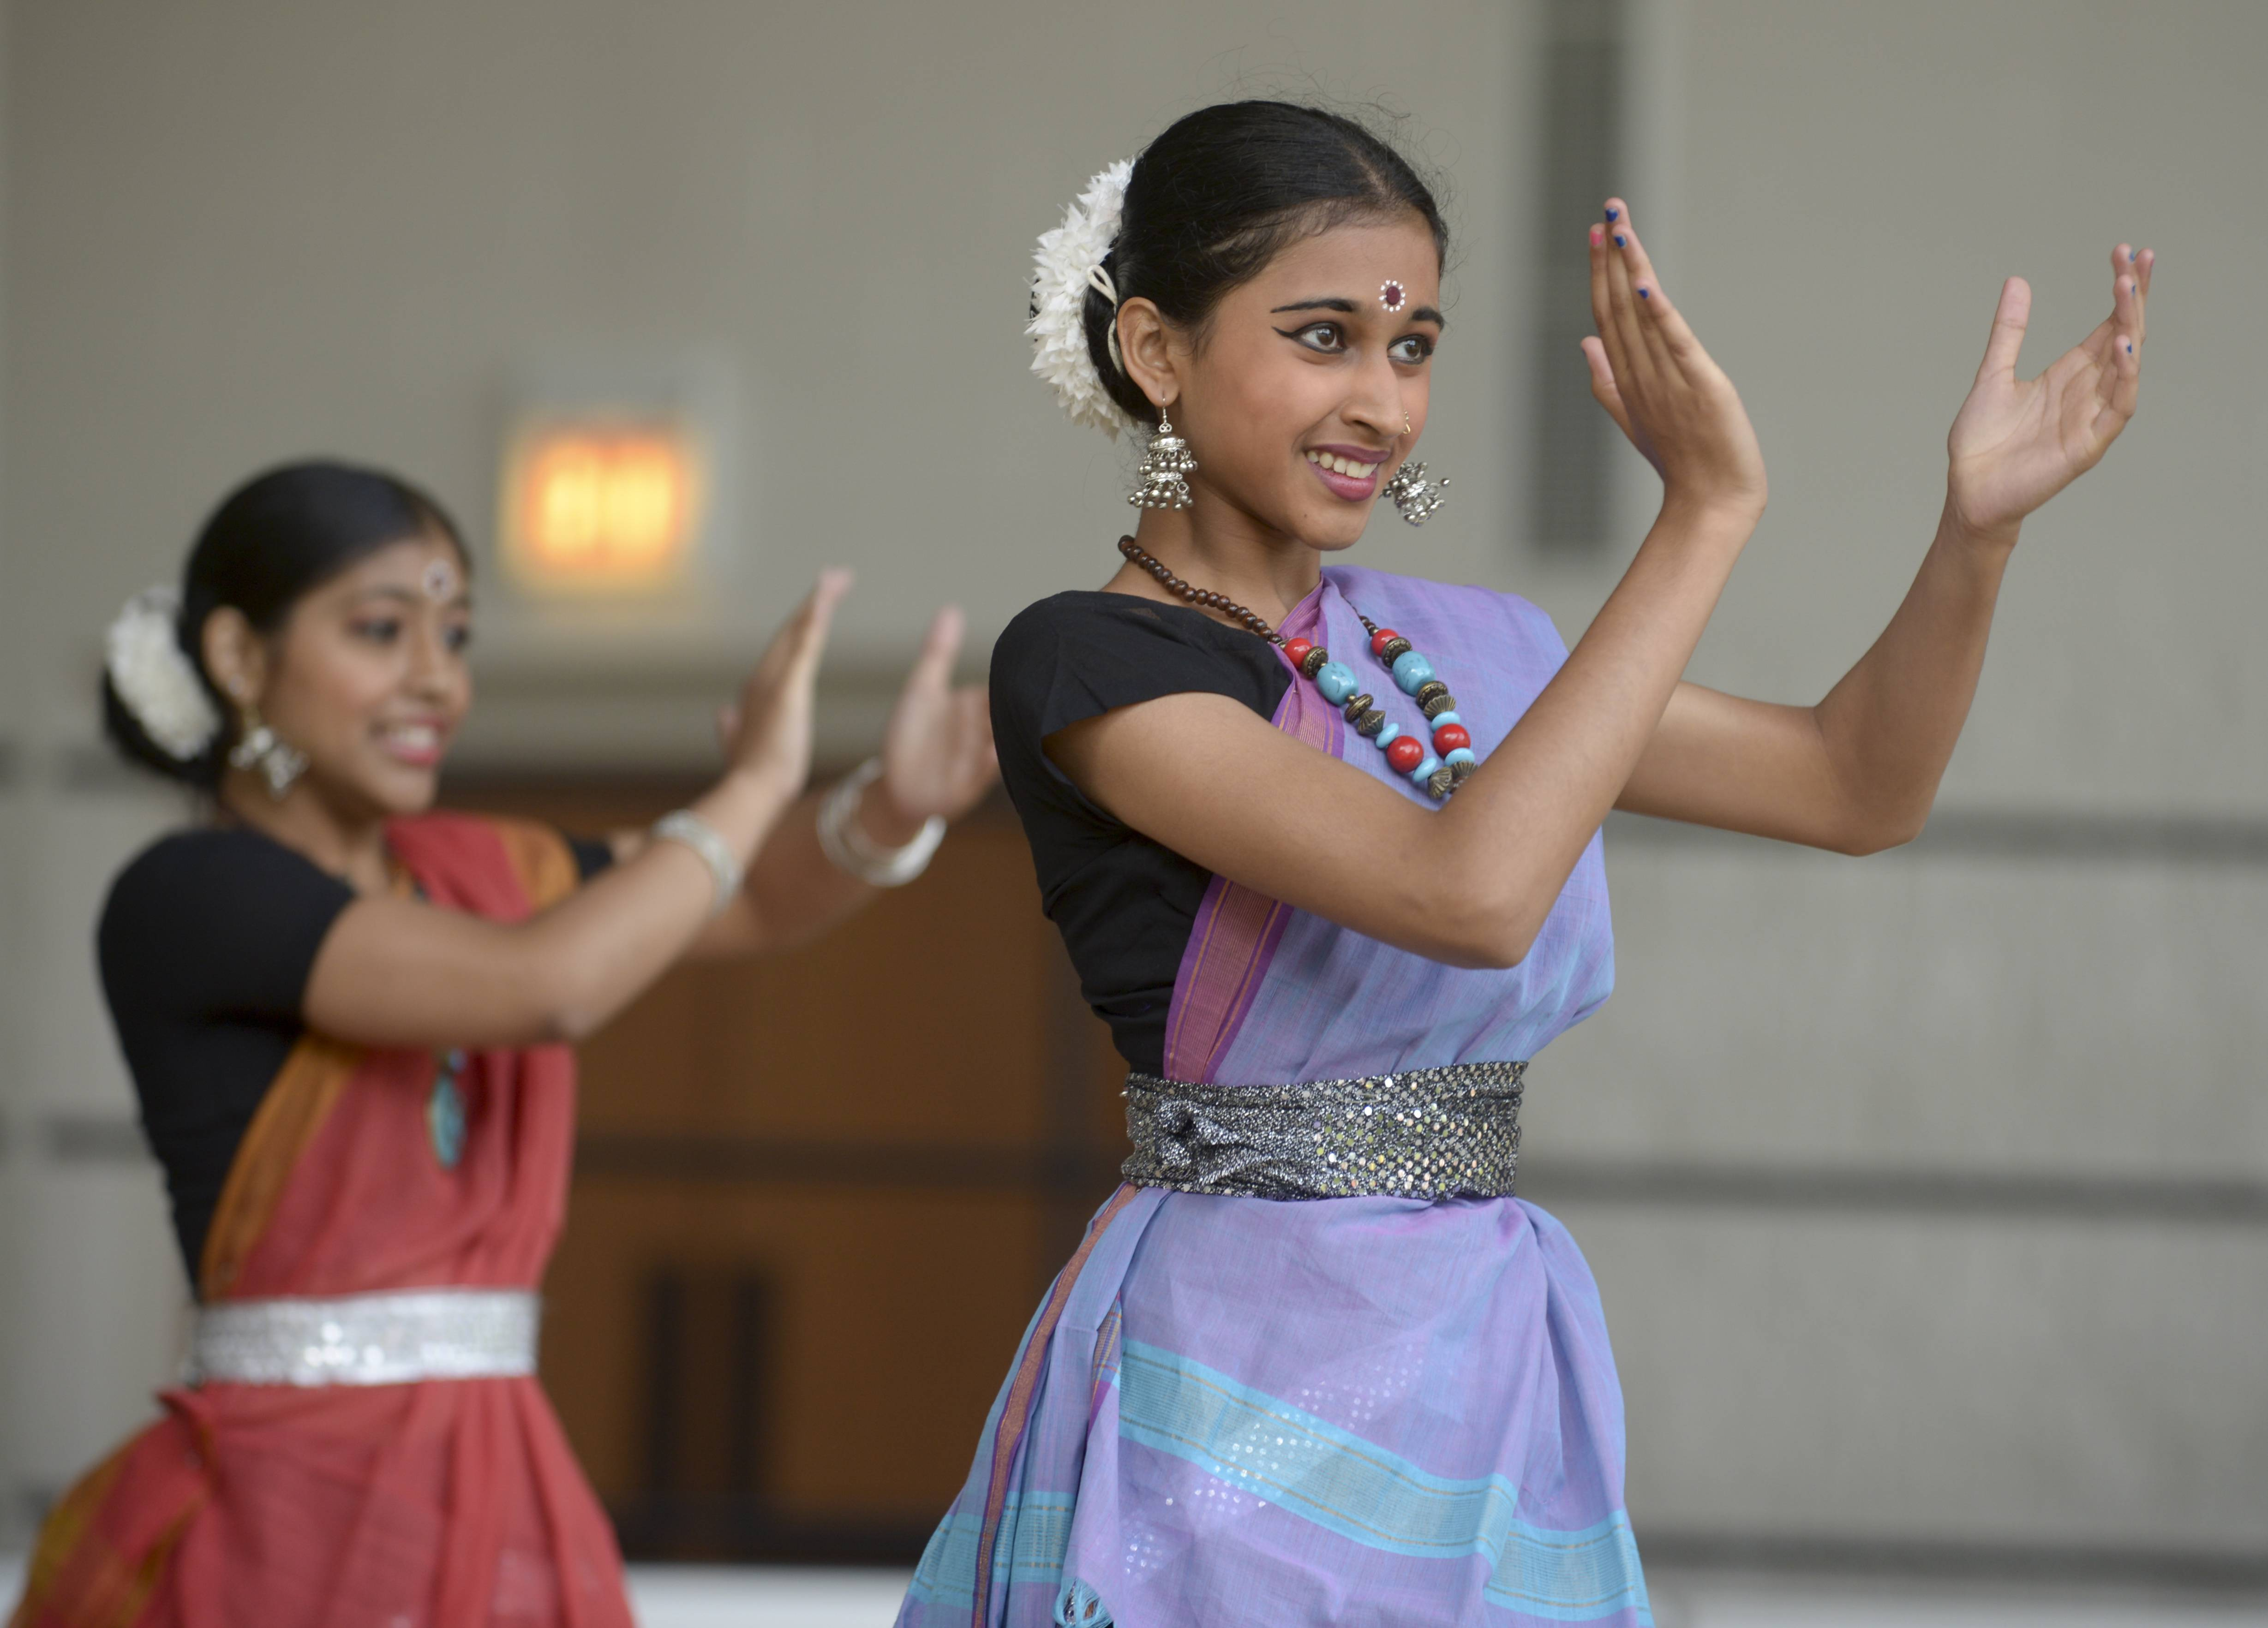 Styles of dance and clothing from various regions in India will be on display Sunday during the second annual Naperville India Day Parade and Celebration.